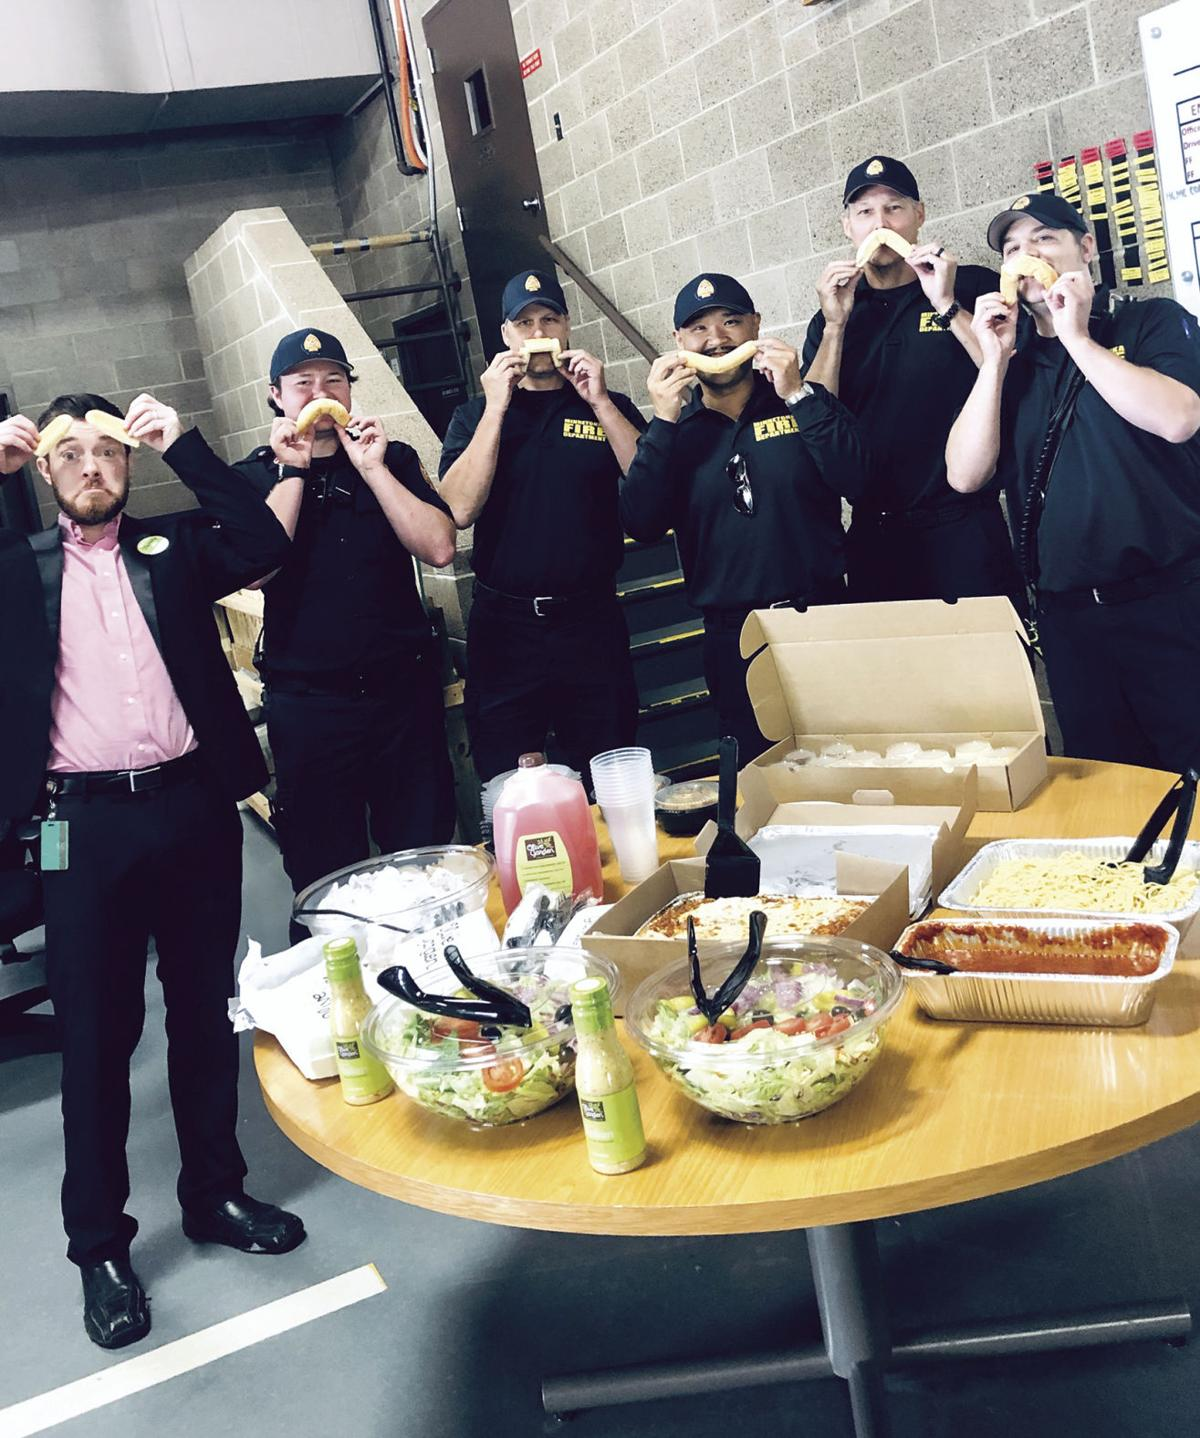 St. Louis Park Olive Garden helps Minnetonka firefighters have fun at work (photos) - 1